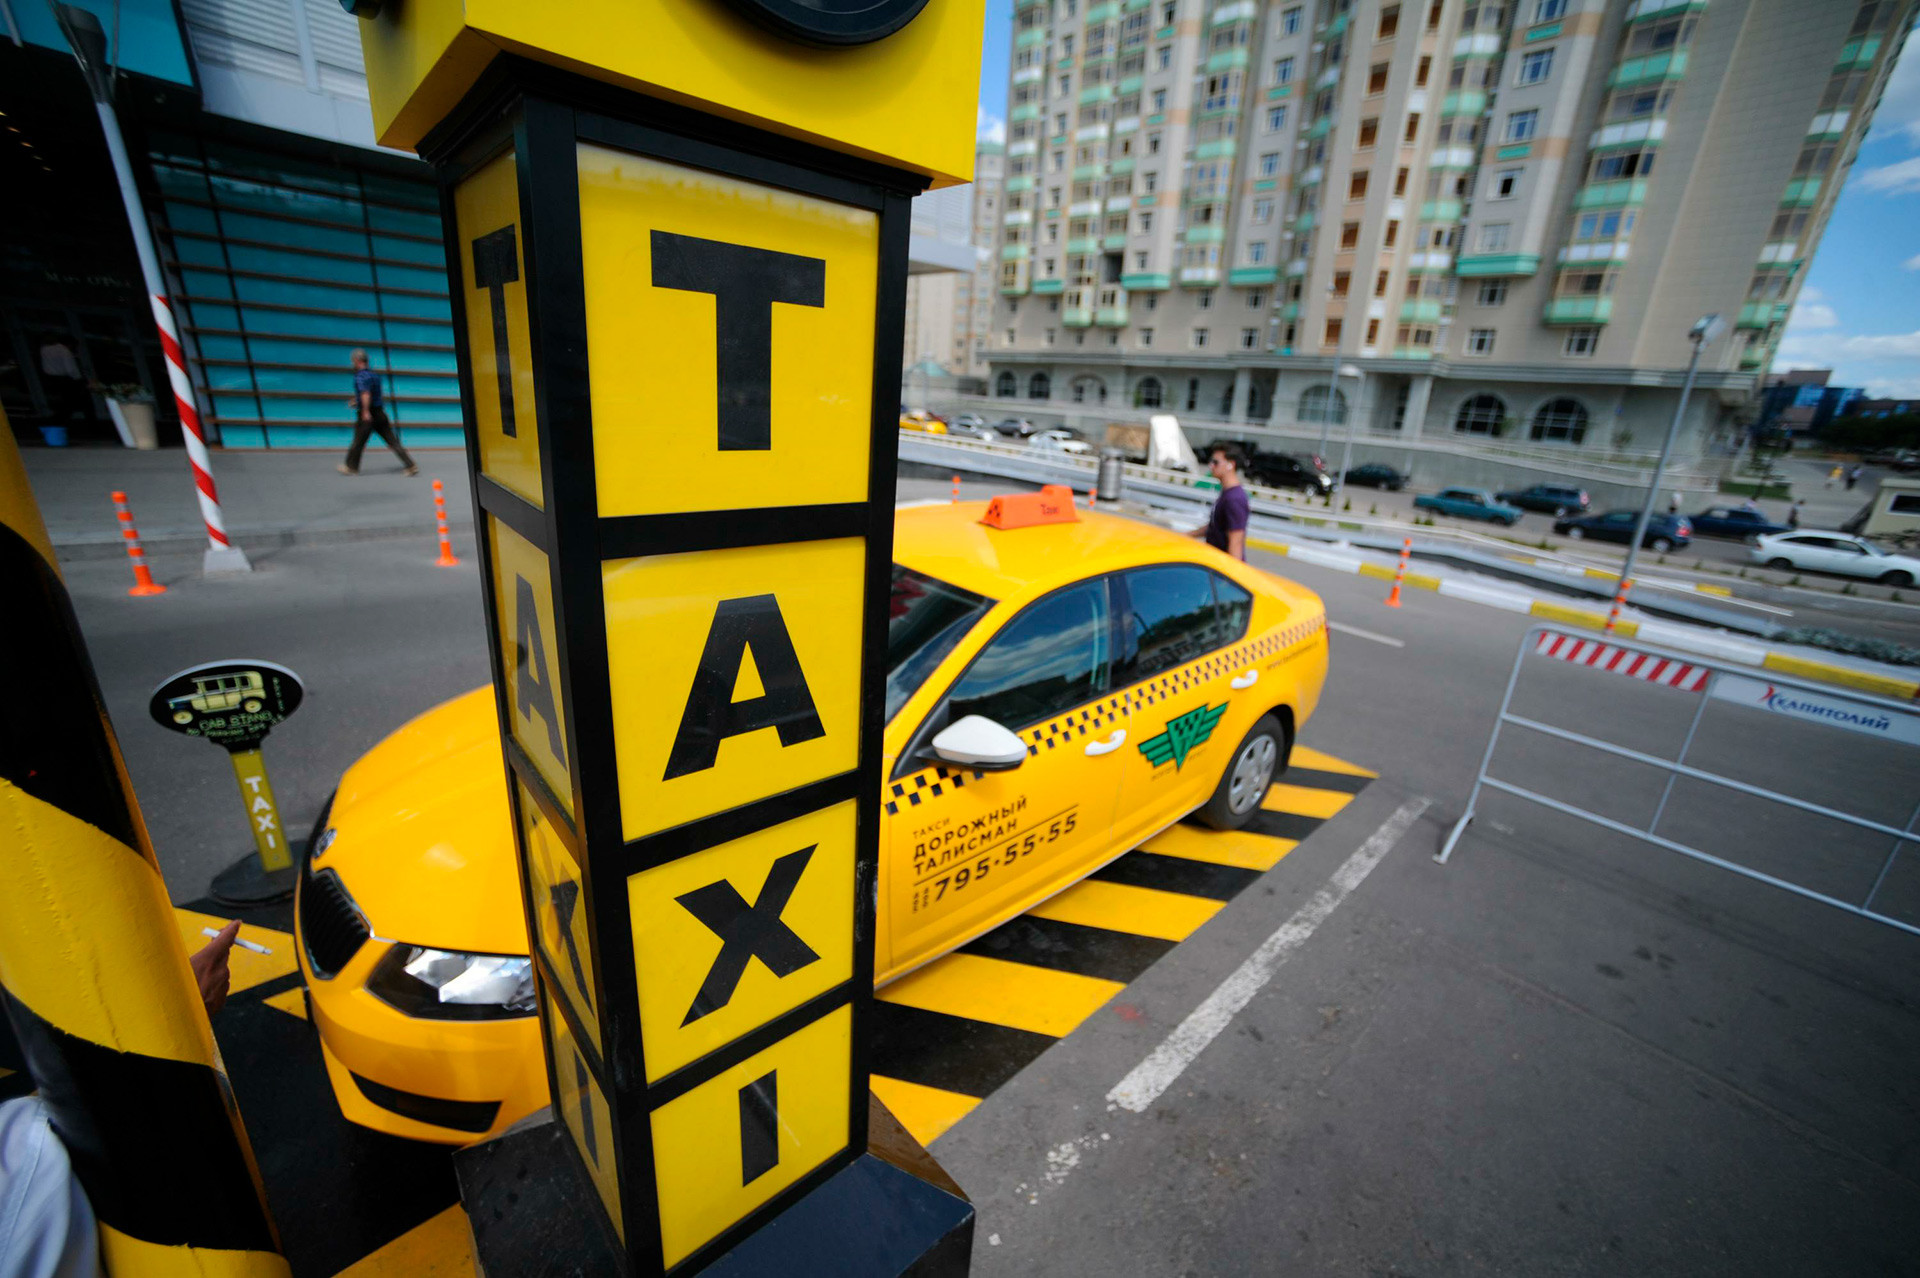 A taxi cab parking in Moscow.